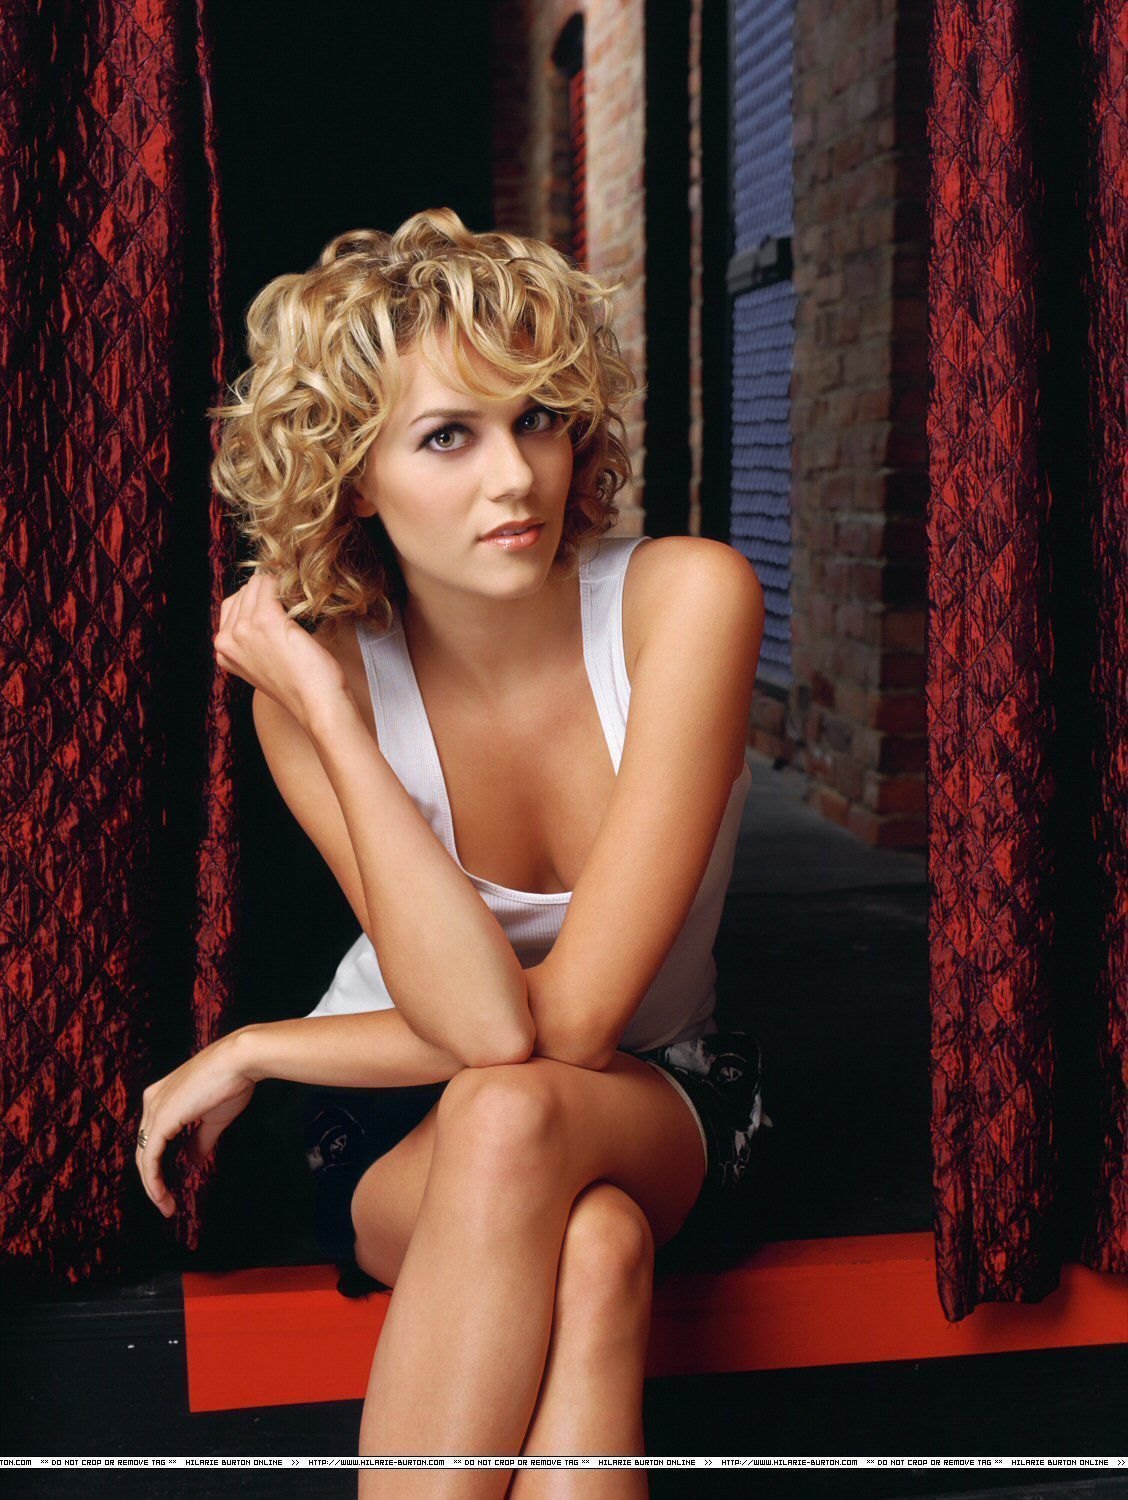 Peyton....She brought a certain artistic charm to One Tree Hill....I miss her character.